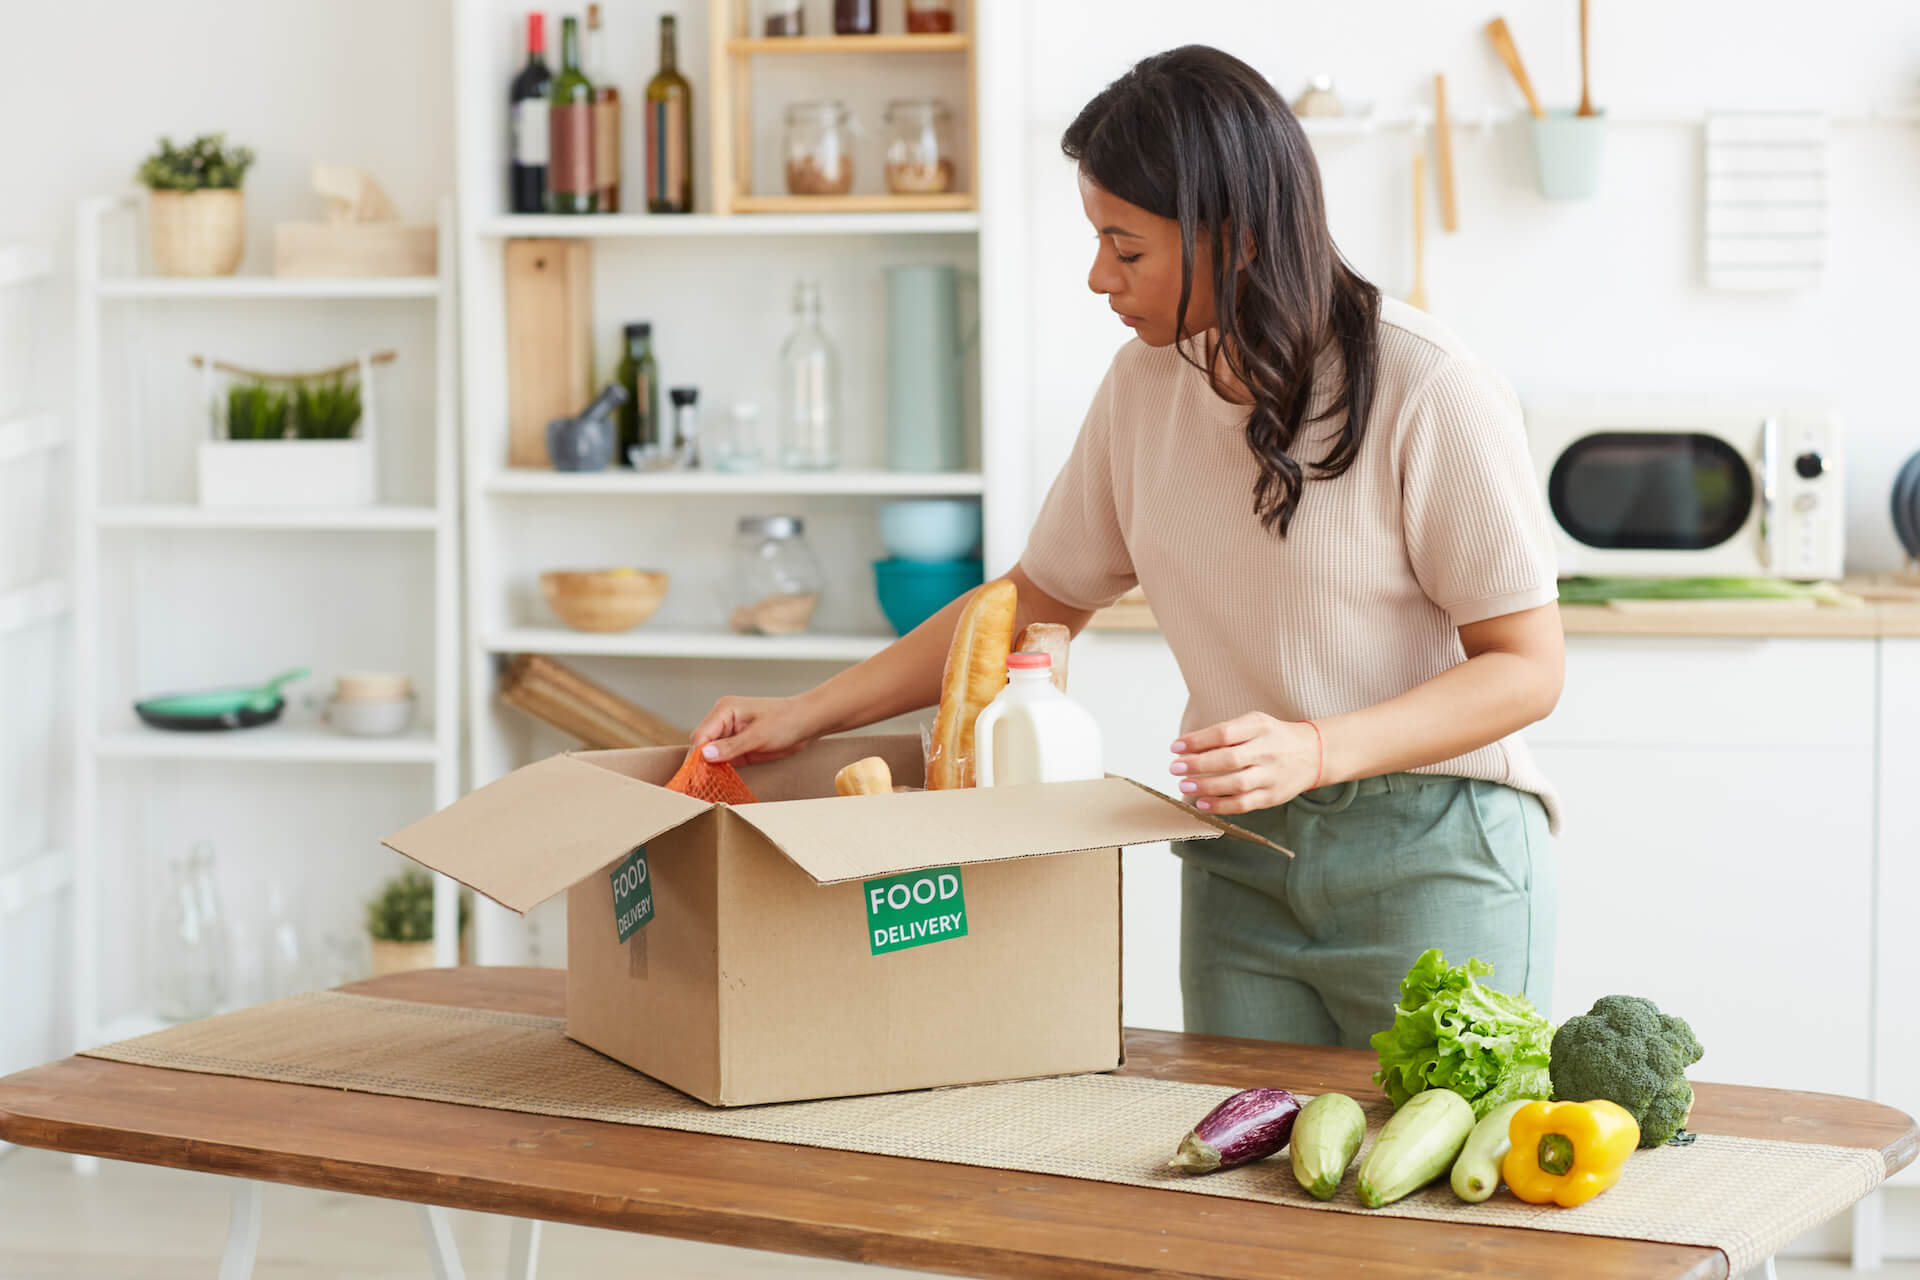 Woman opening her box of online groceries